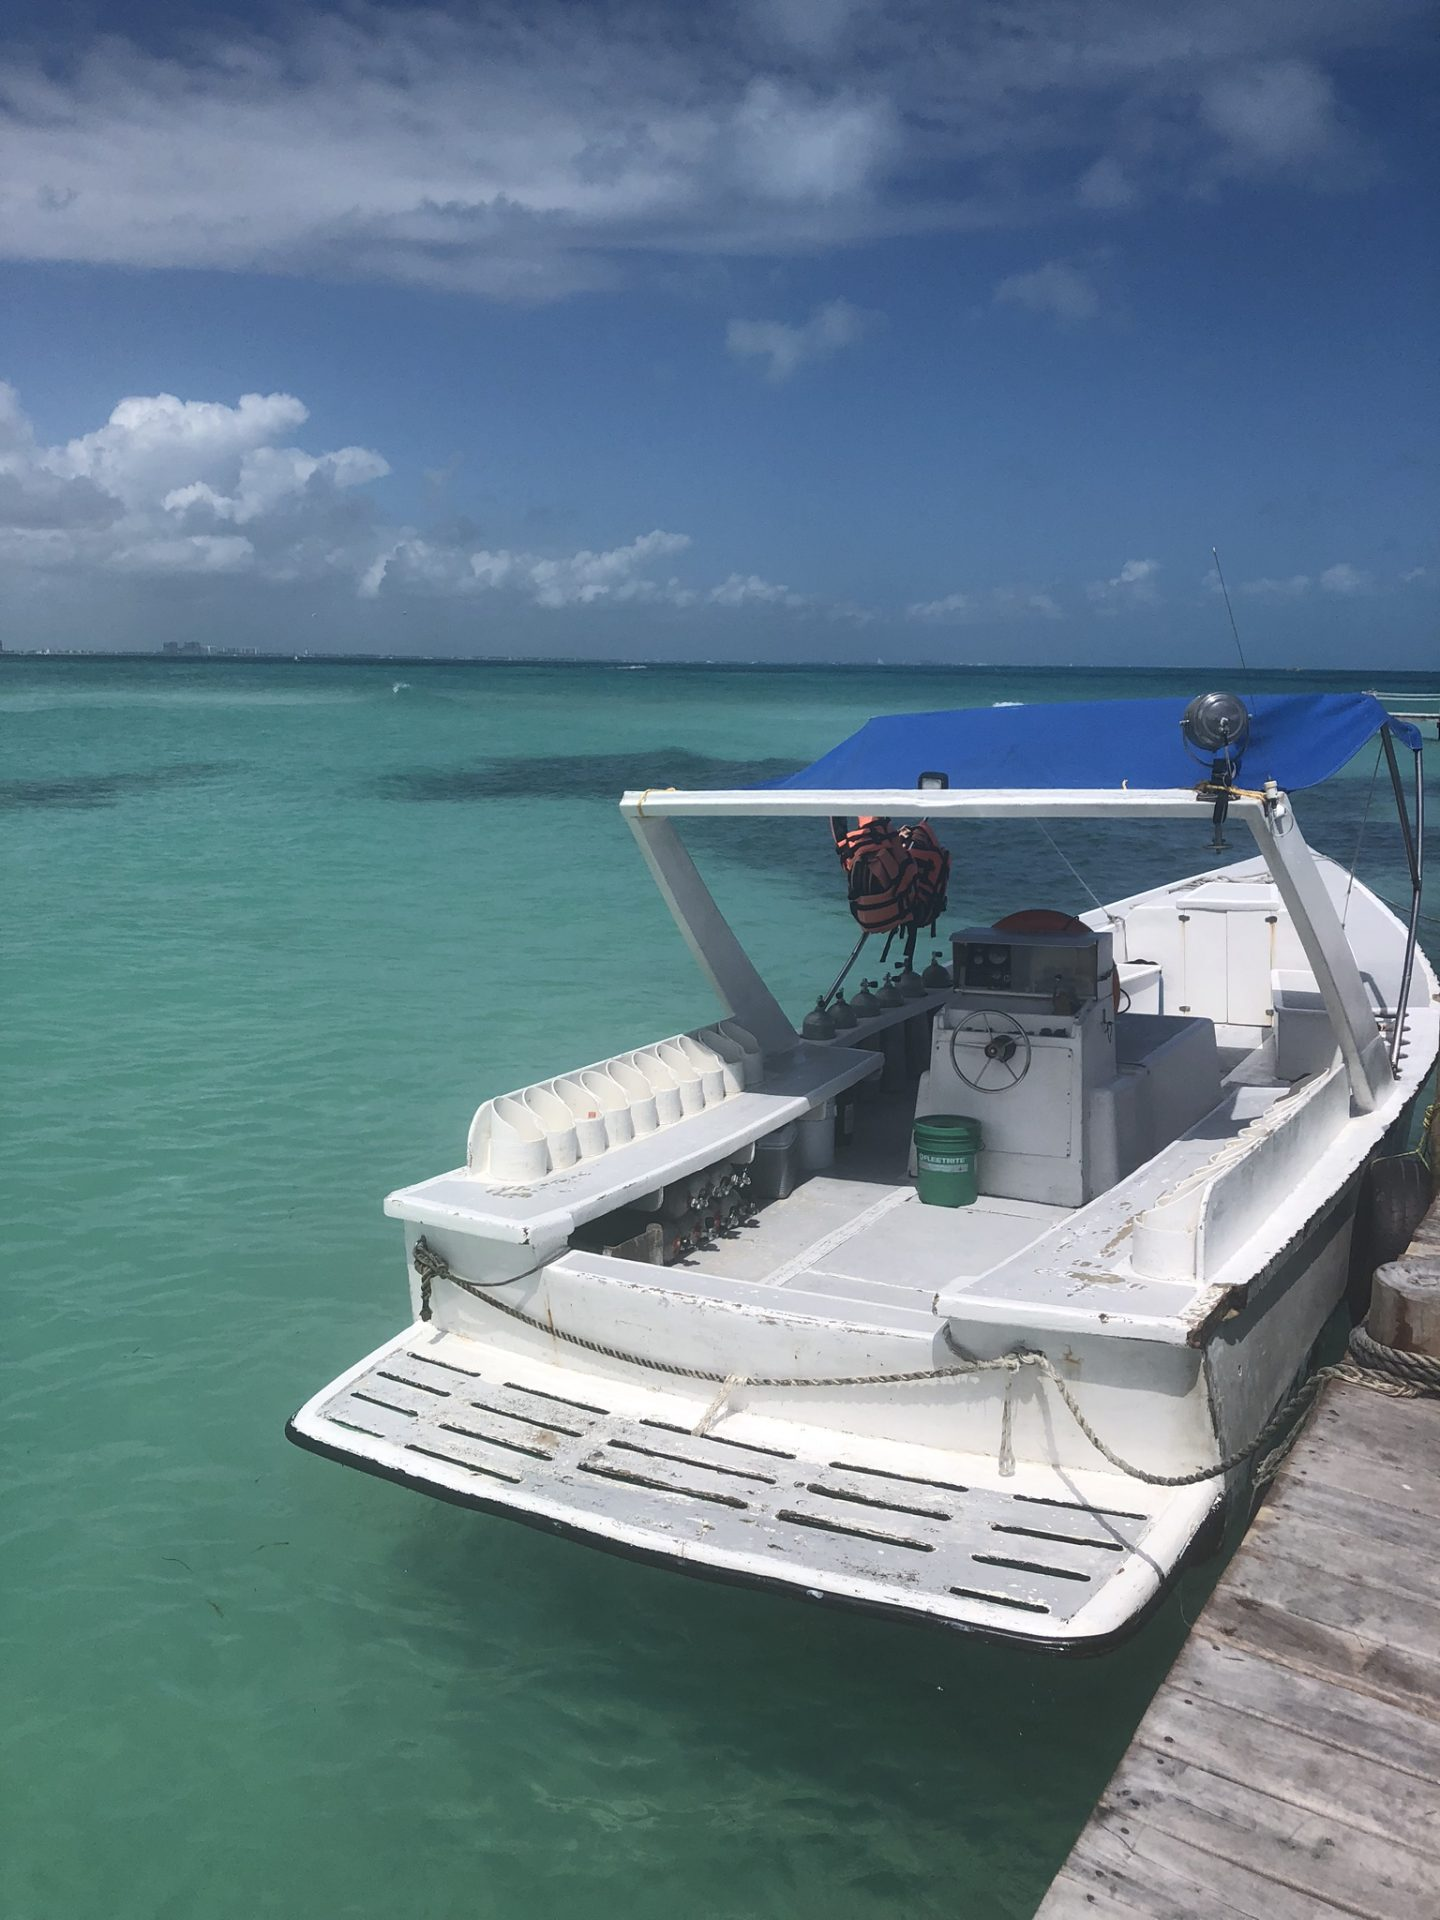 A boat in the Caribbean Sea in Cancun, Mexico